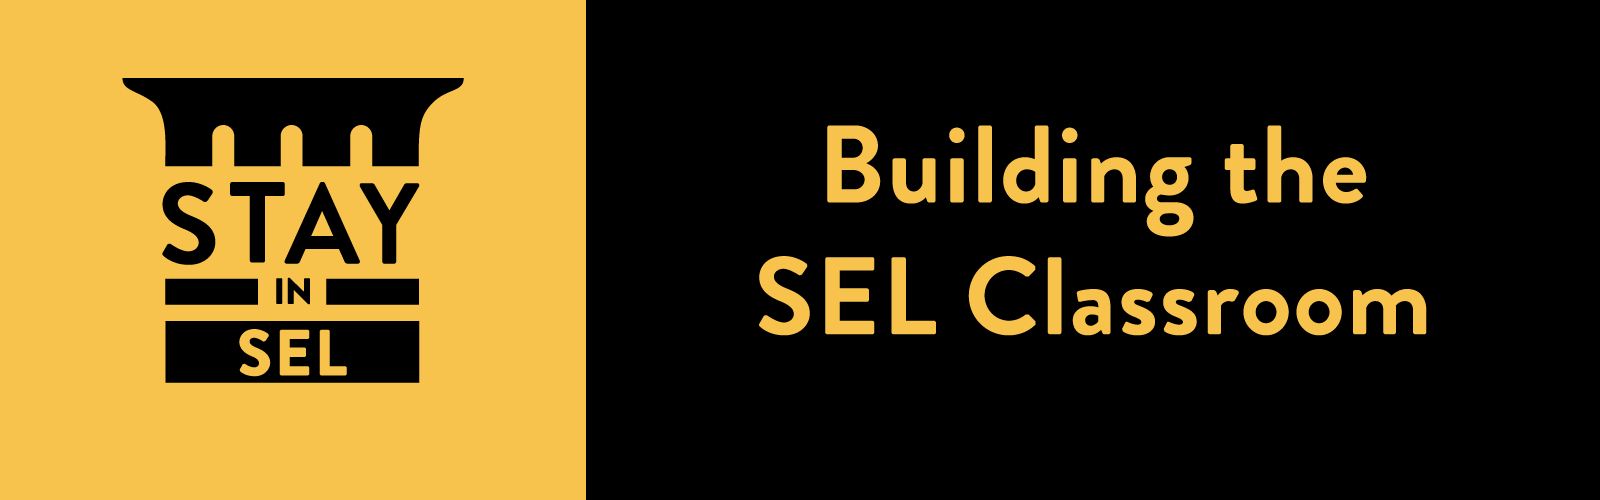 STAY in SEL Building the SEL Classroom Hero